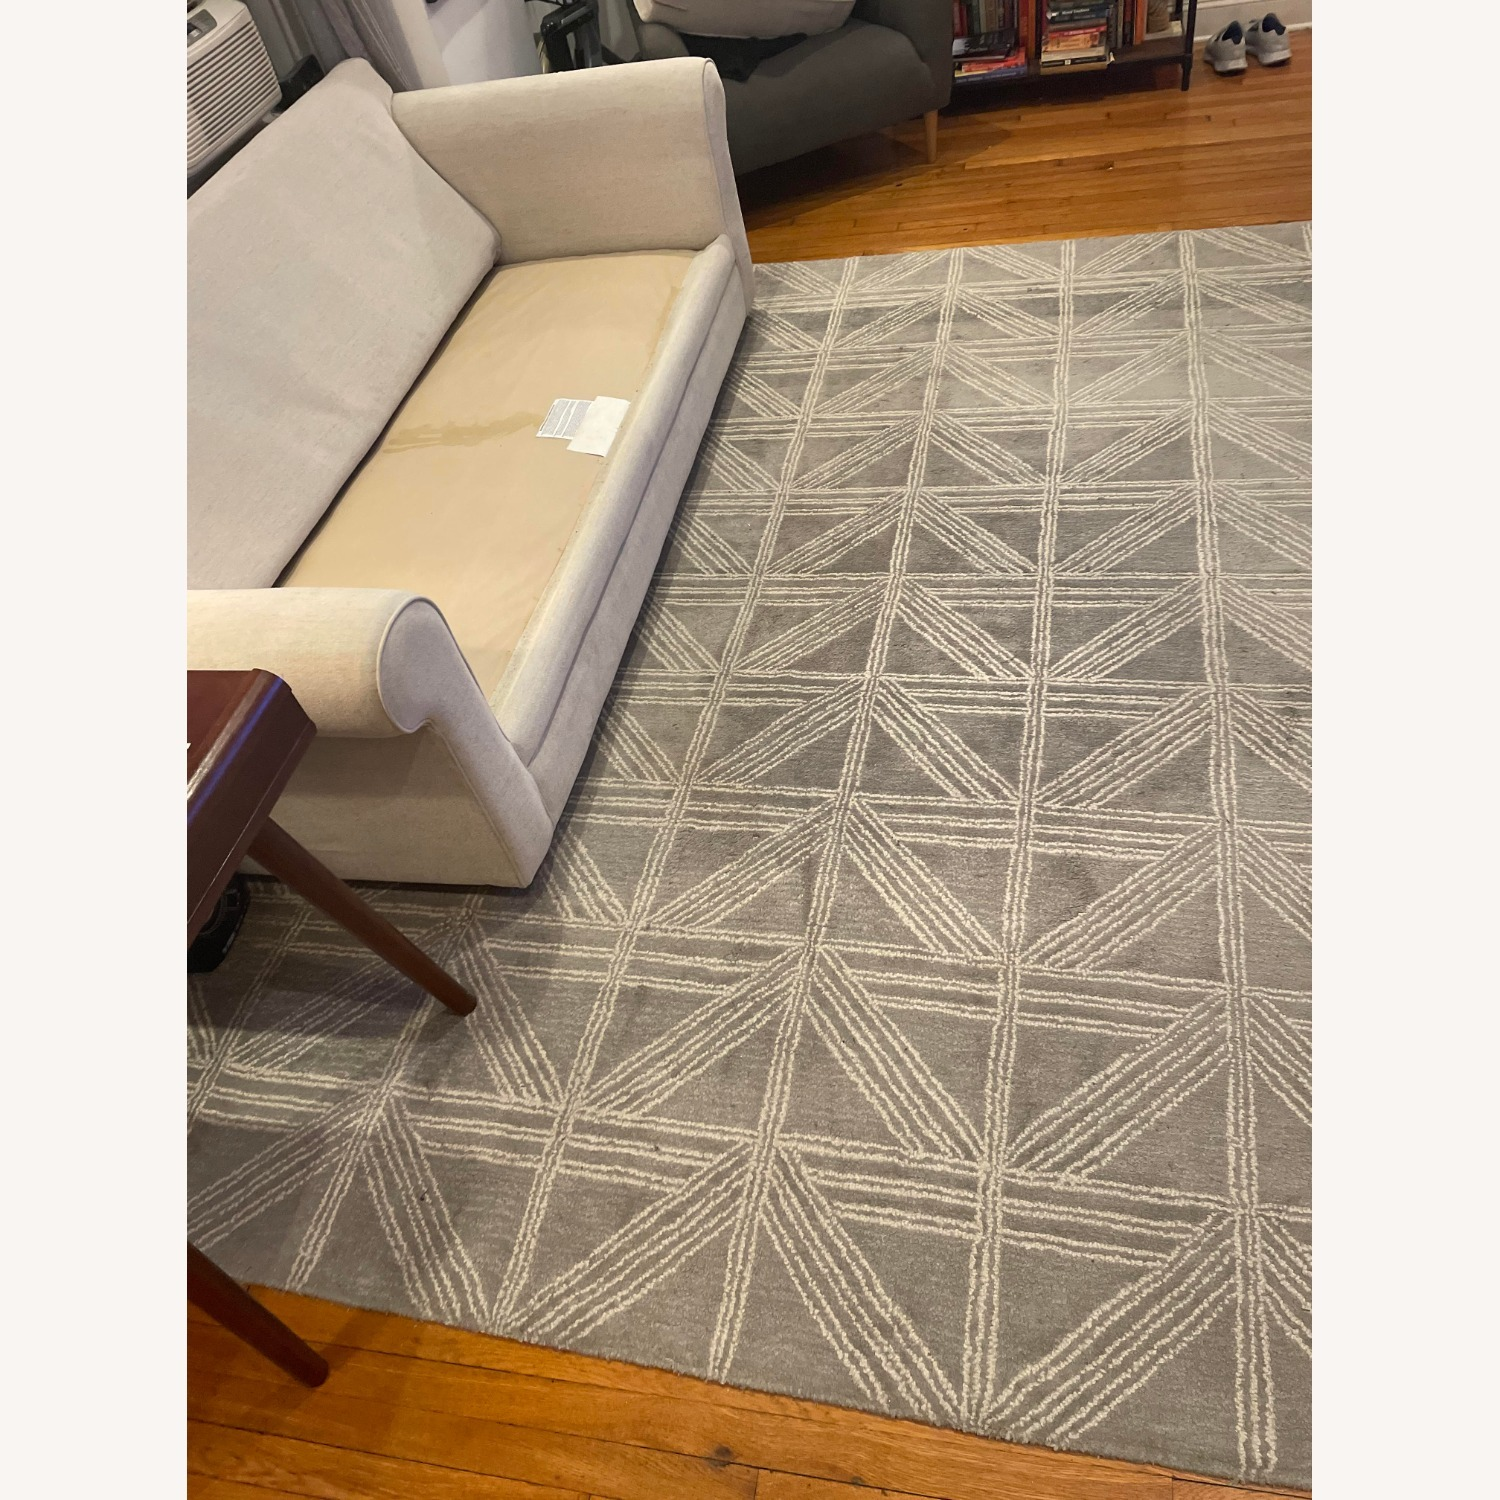 Artisan Home Light Blue/Gray and White Patterned Rug - image-2